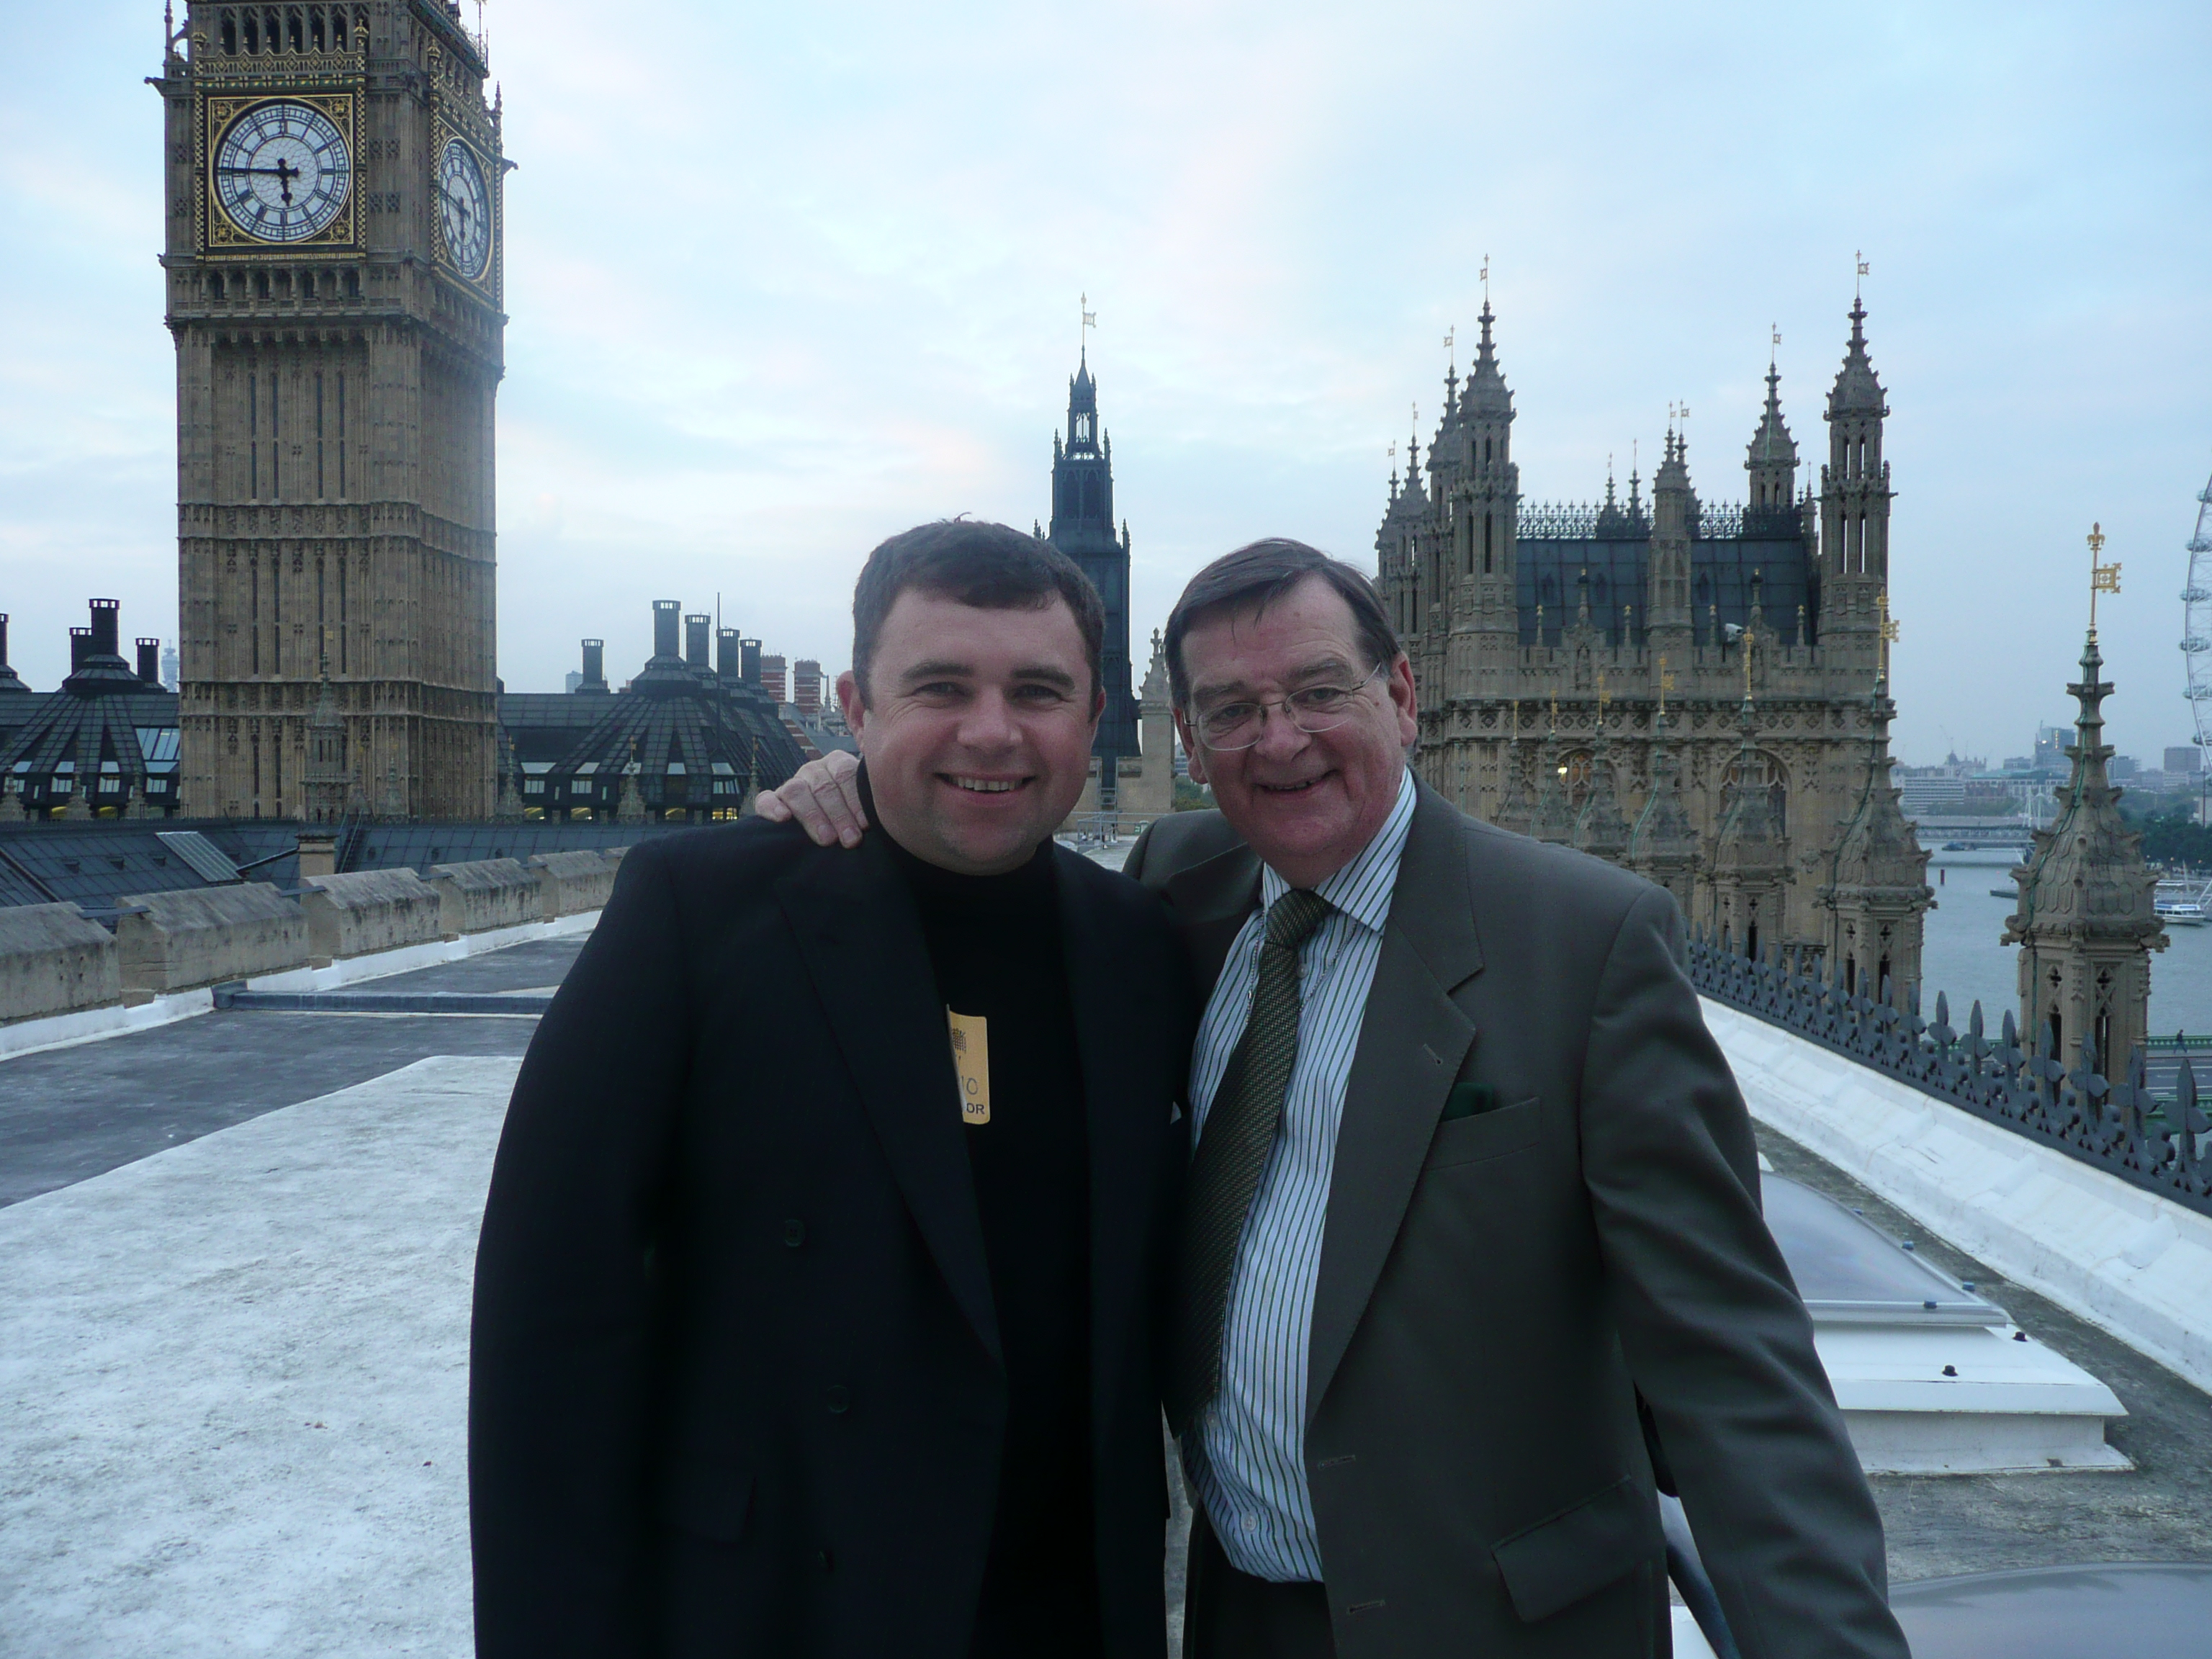 Bishop Steven Evans with Lord Leslie Griffiths above The House of Lords, London